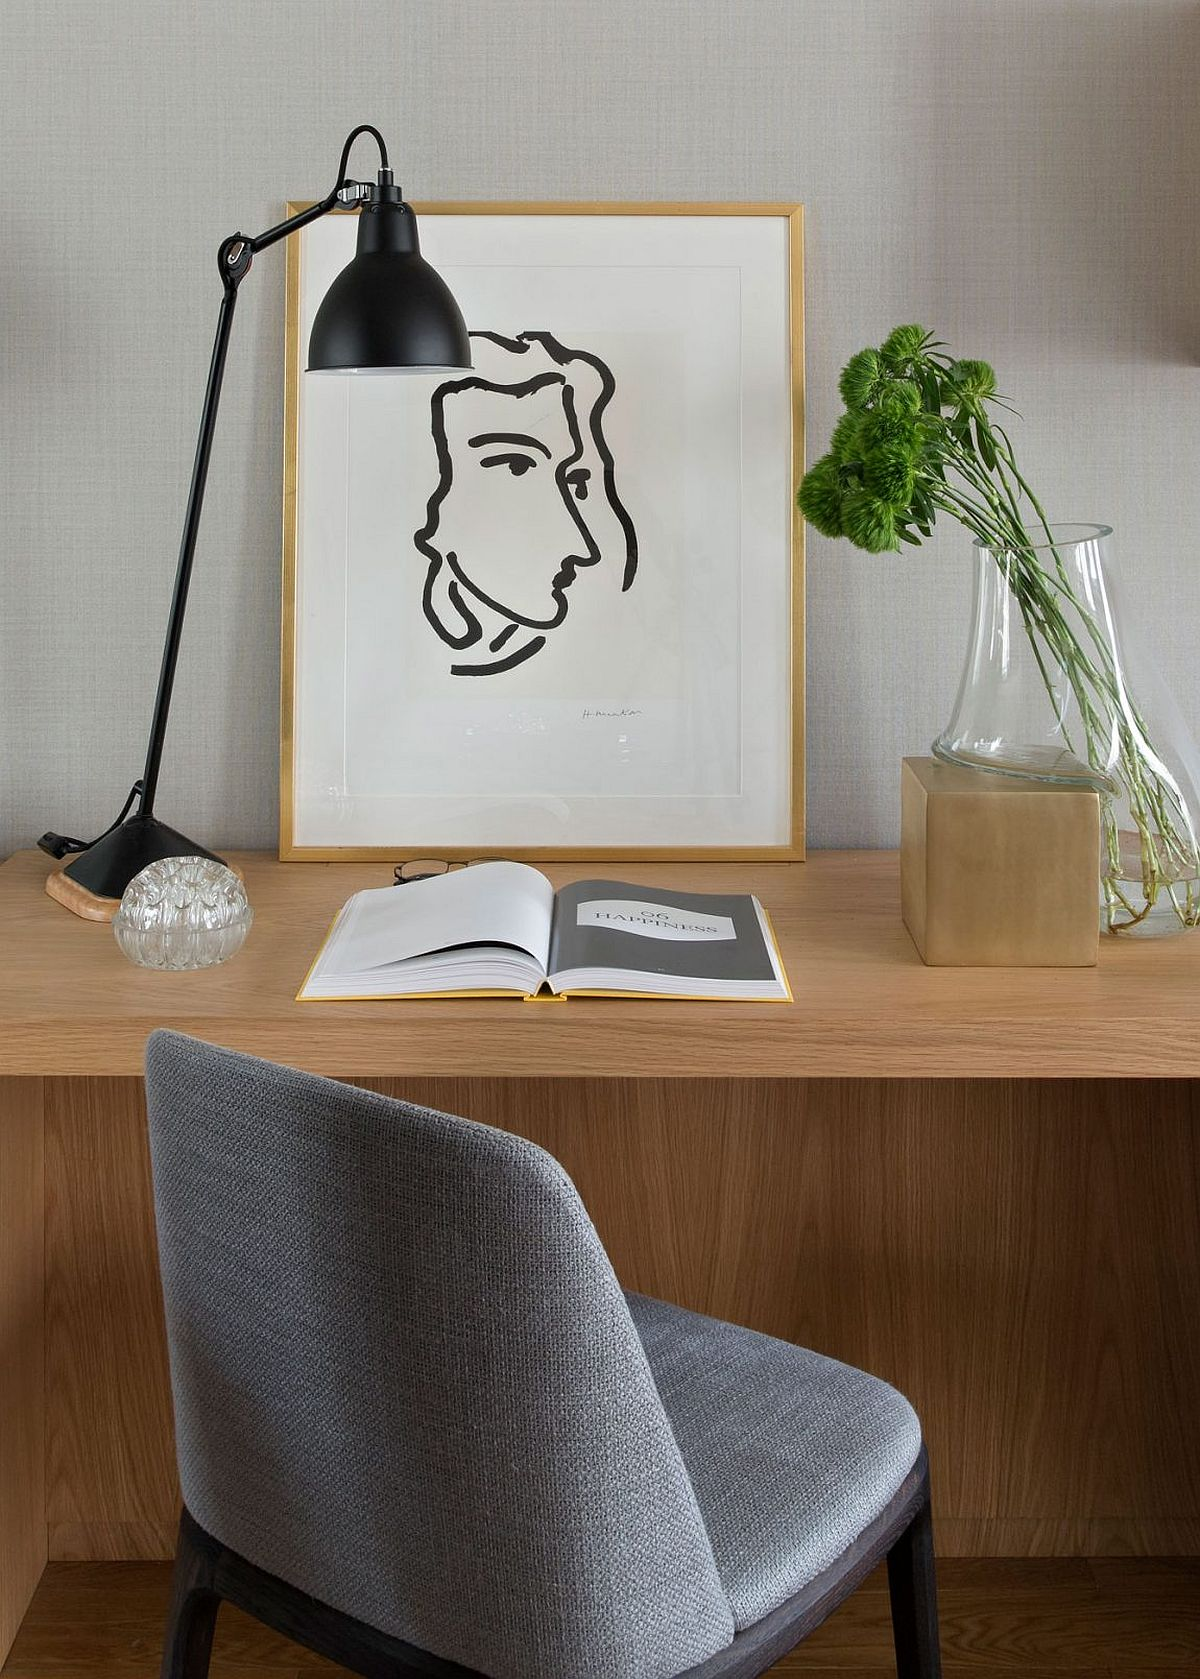 Home workspace that is simple and elegant